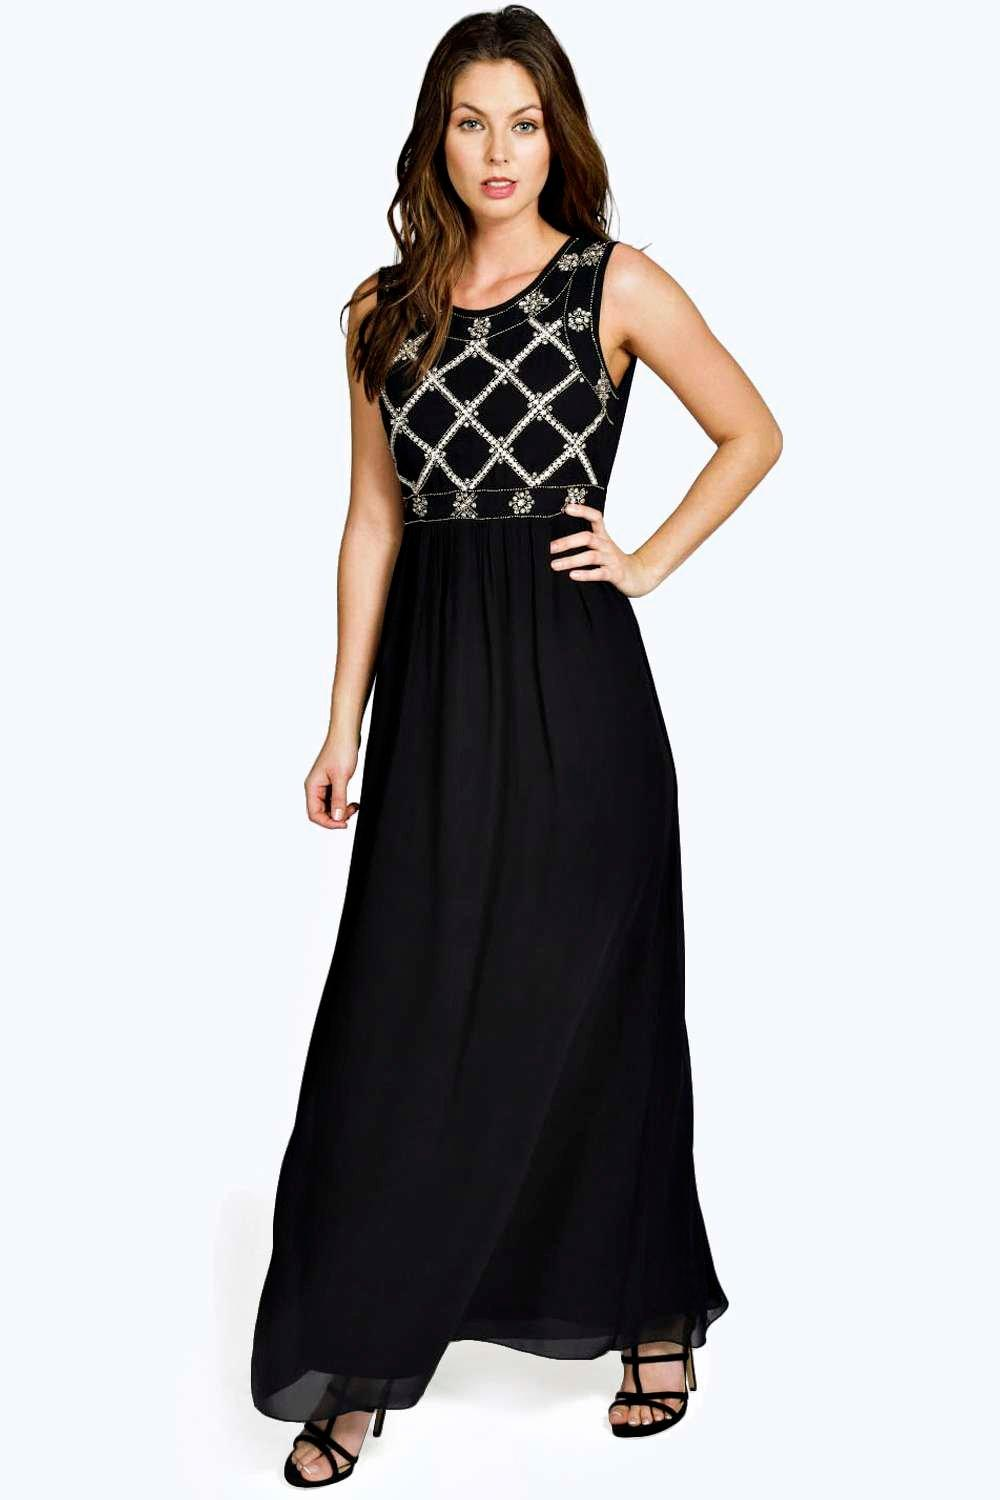 Boutique louise embellished top chiffon maxi dress at for Boohoo dresses for weddings